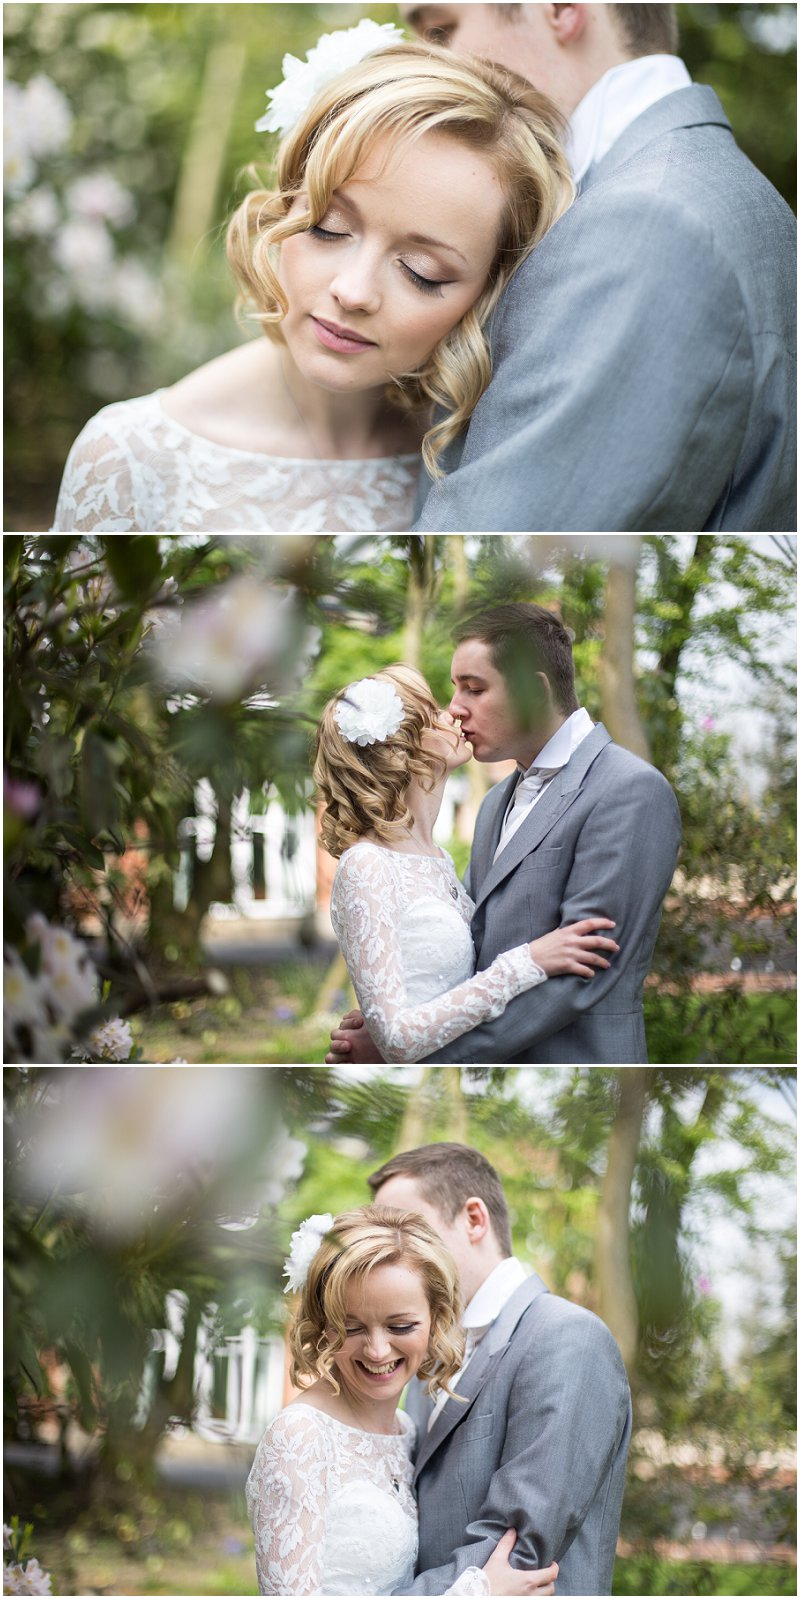 Bride and groom during portraits at Ashfield House Wedding photographer